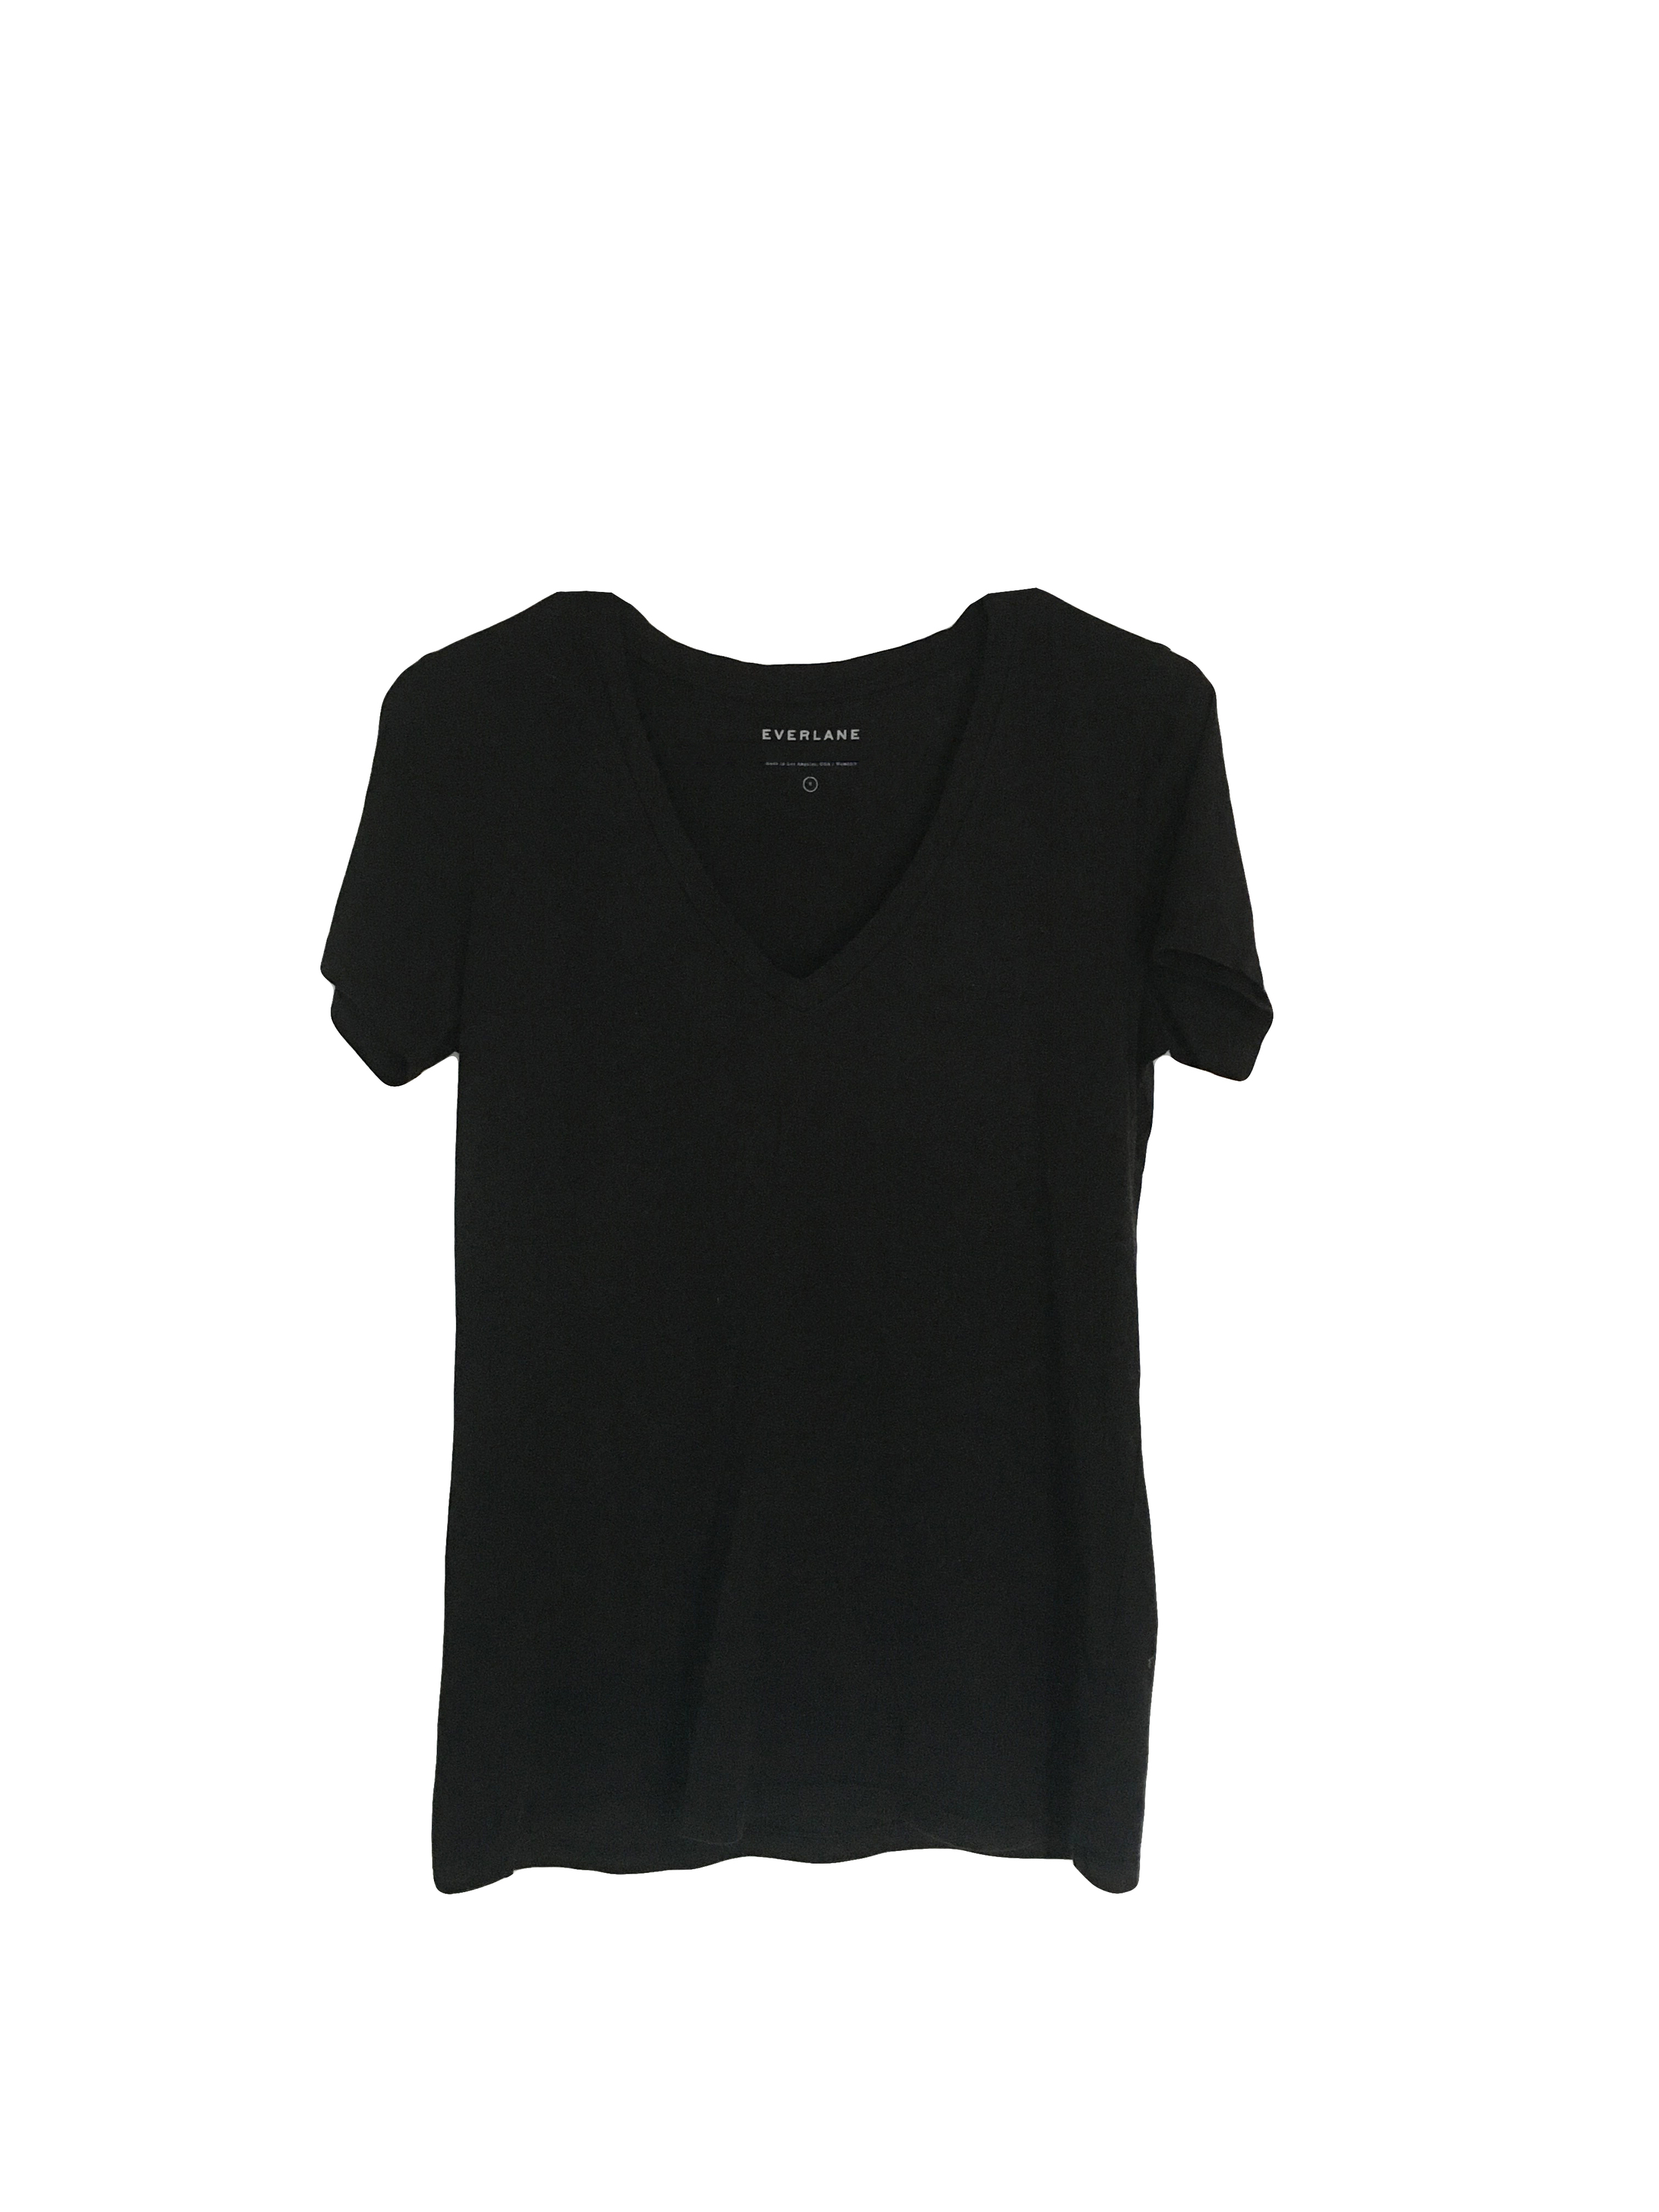 Everlane Black Cotton Tee | A Capsule Wardrobe Basic and Staple at Cat On The Moon | A thoughtful style blog for a simple life.